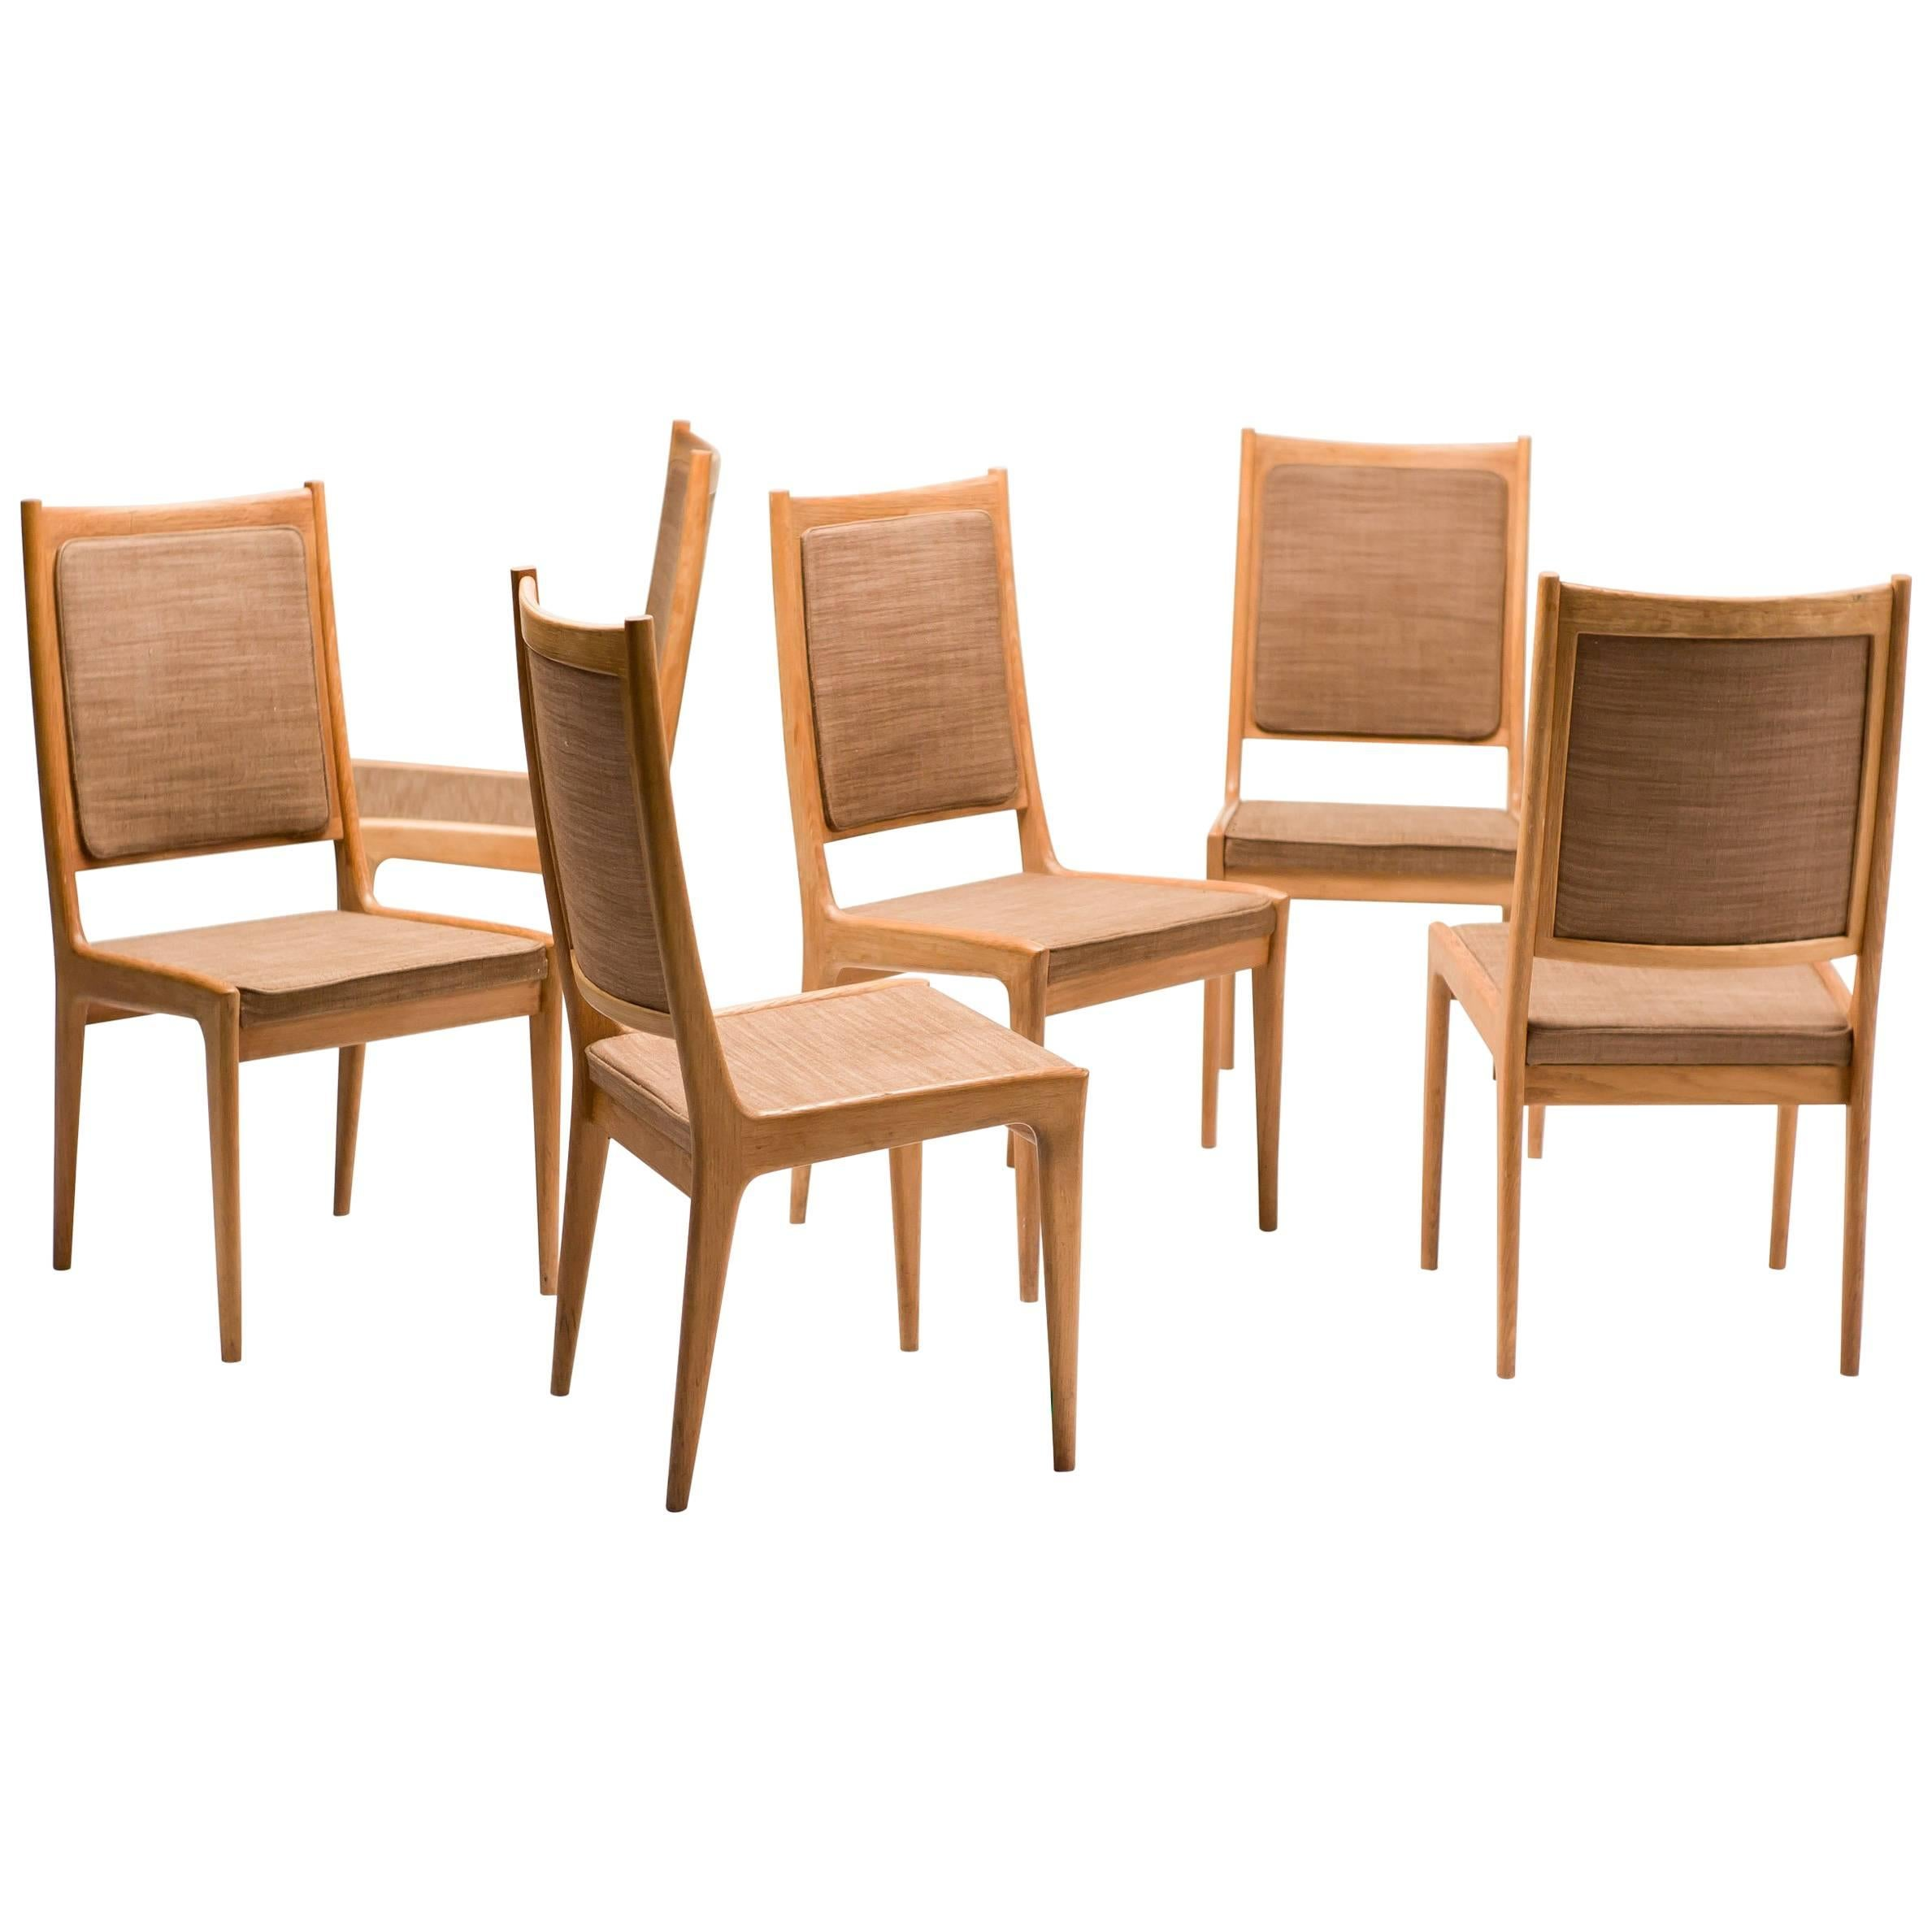 Set Of Six Scandinavian Dining Chairs By Karl Erik Ekselius For JOC For Sale